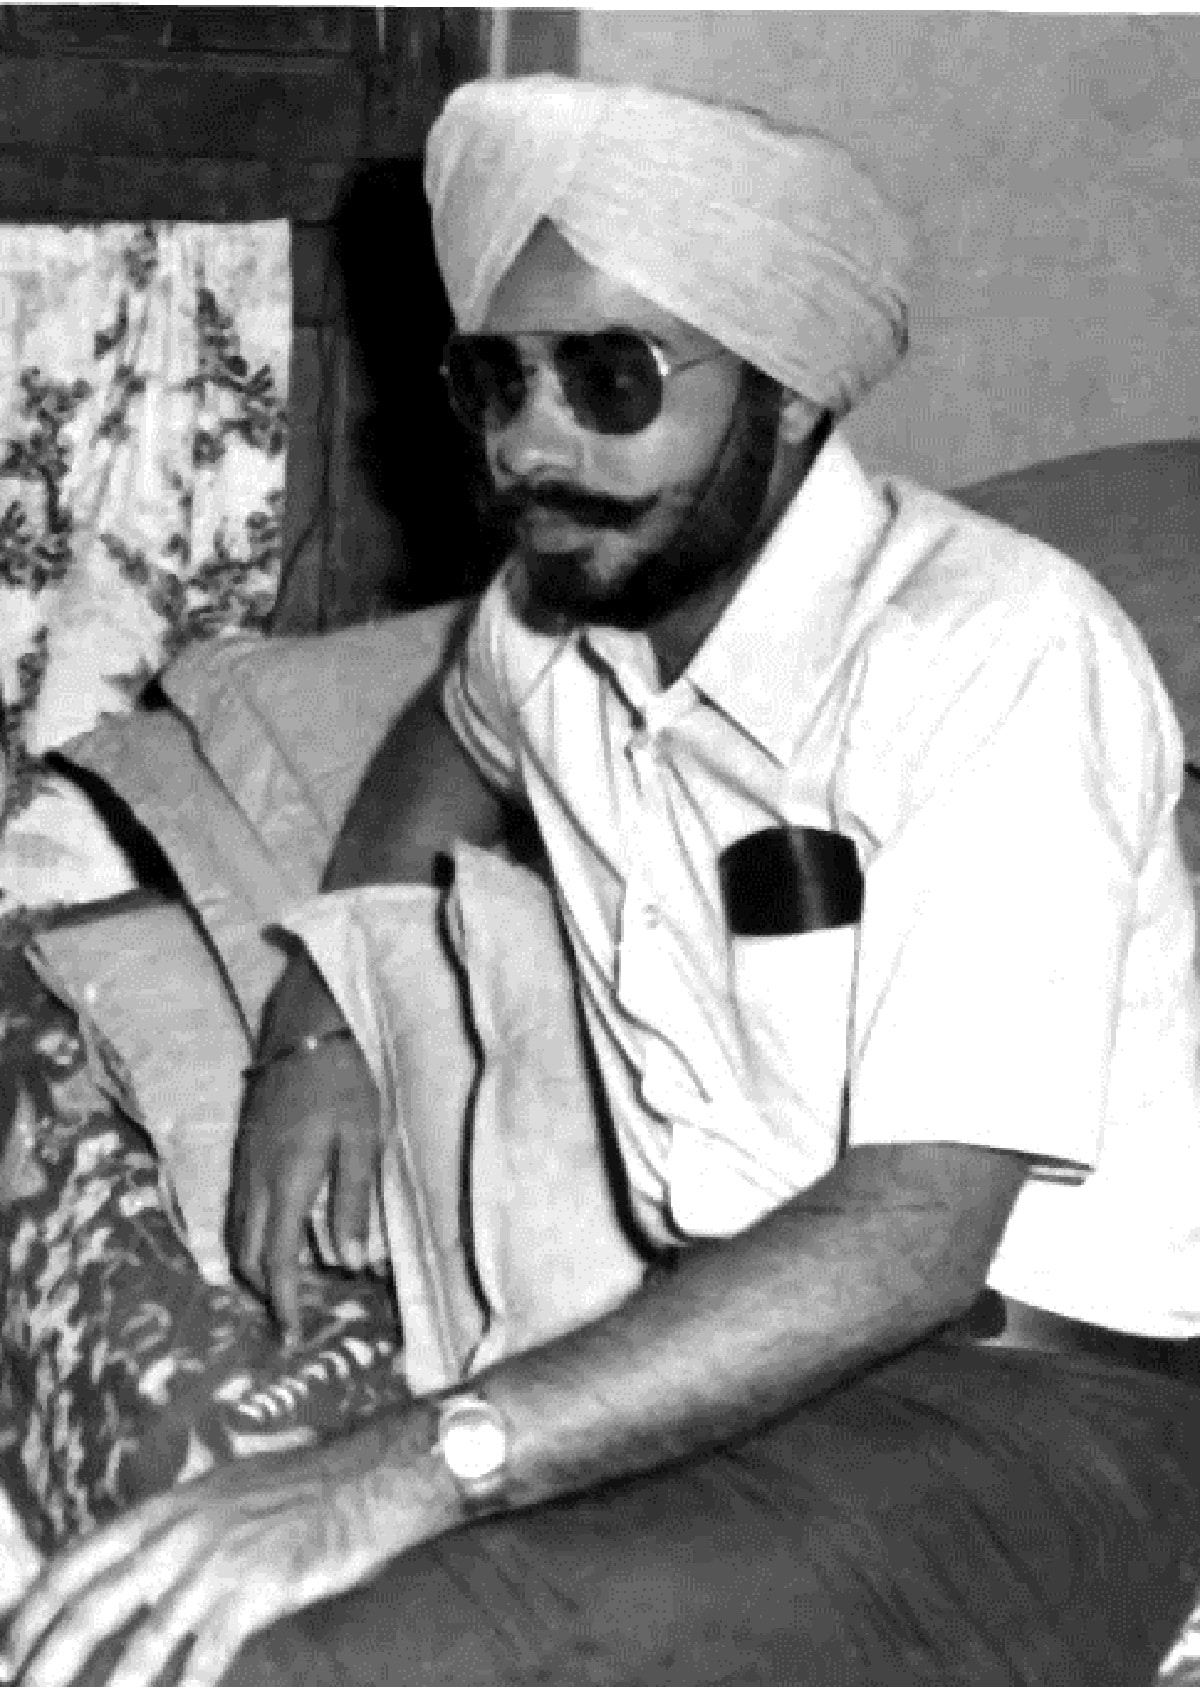 Narendra Modi was forced to go into hiding during the state of emergency imposed across the country in 1975.